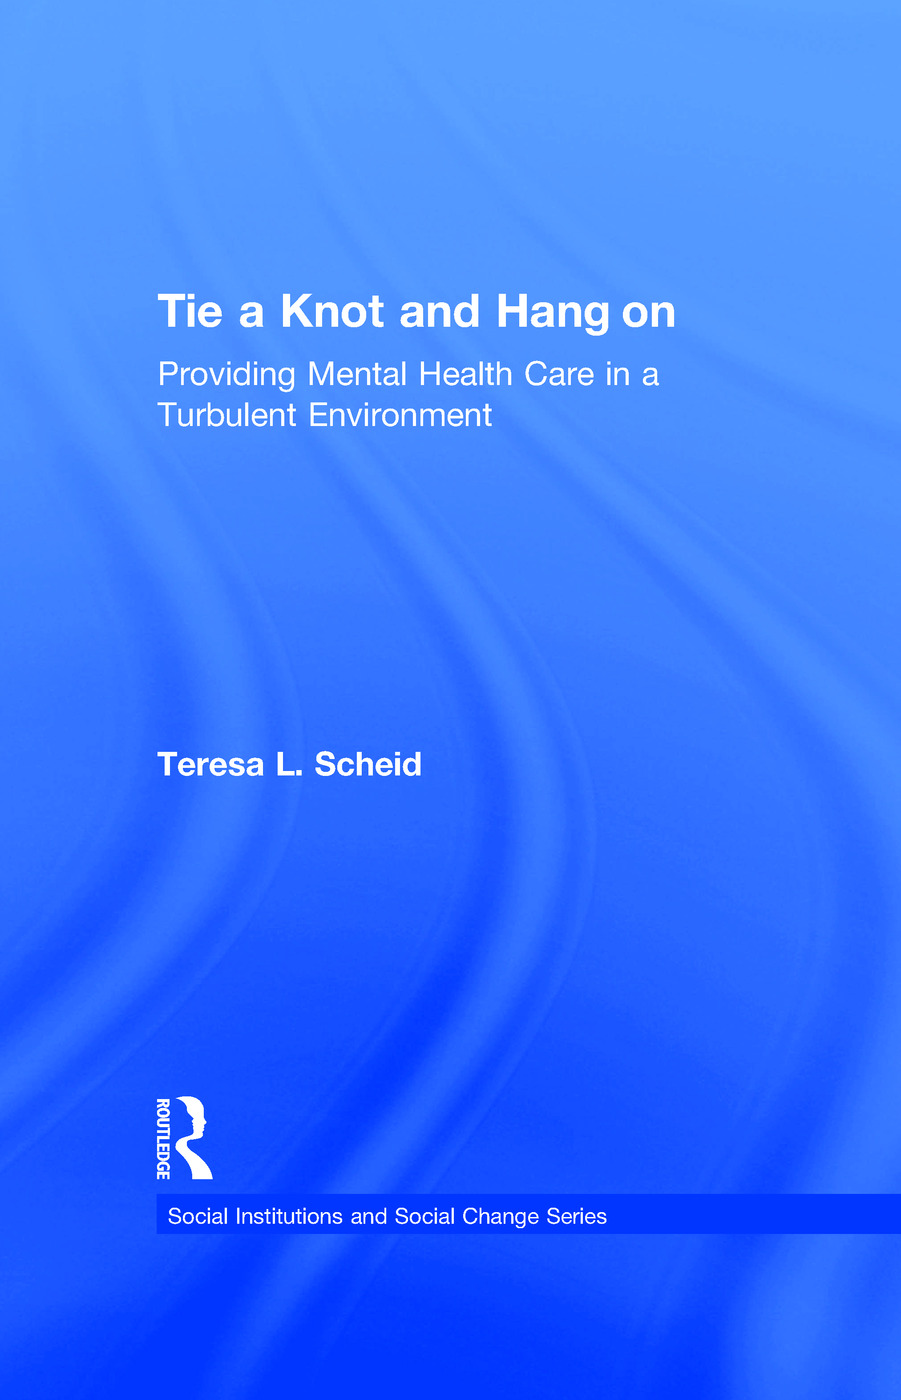 Tie a Knot and Hang on: Providing Mental Health Care in a Turbulent Environment book cover